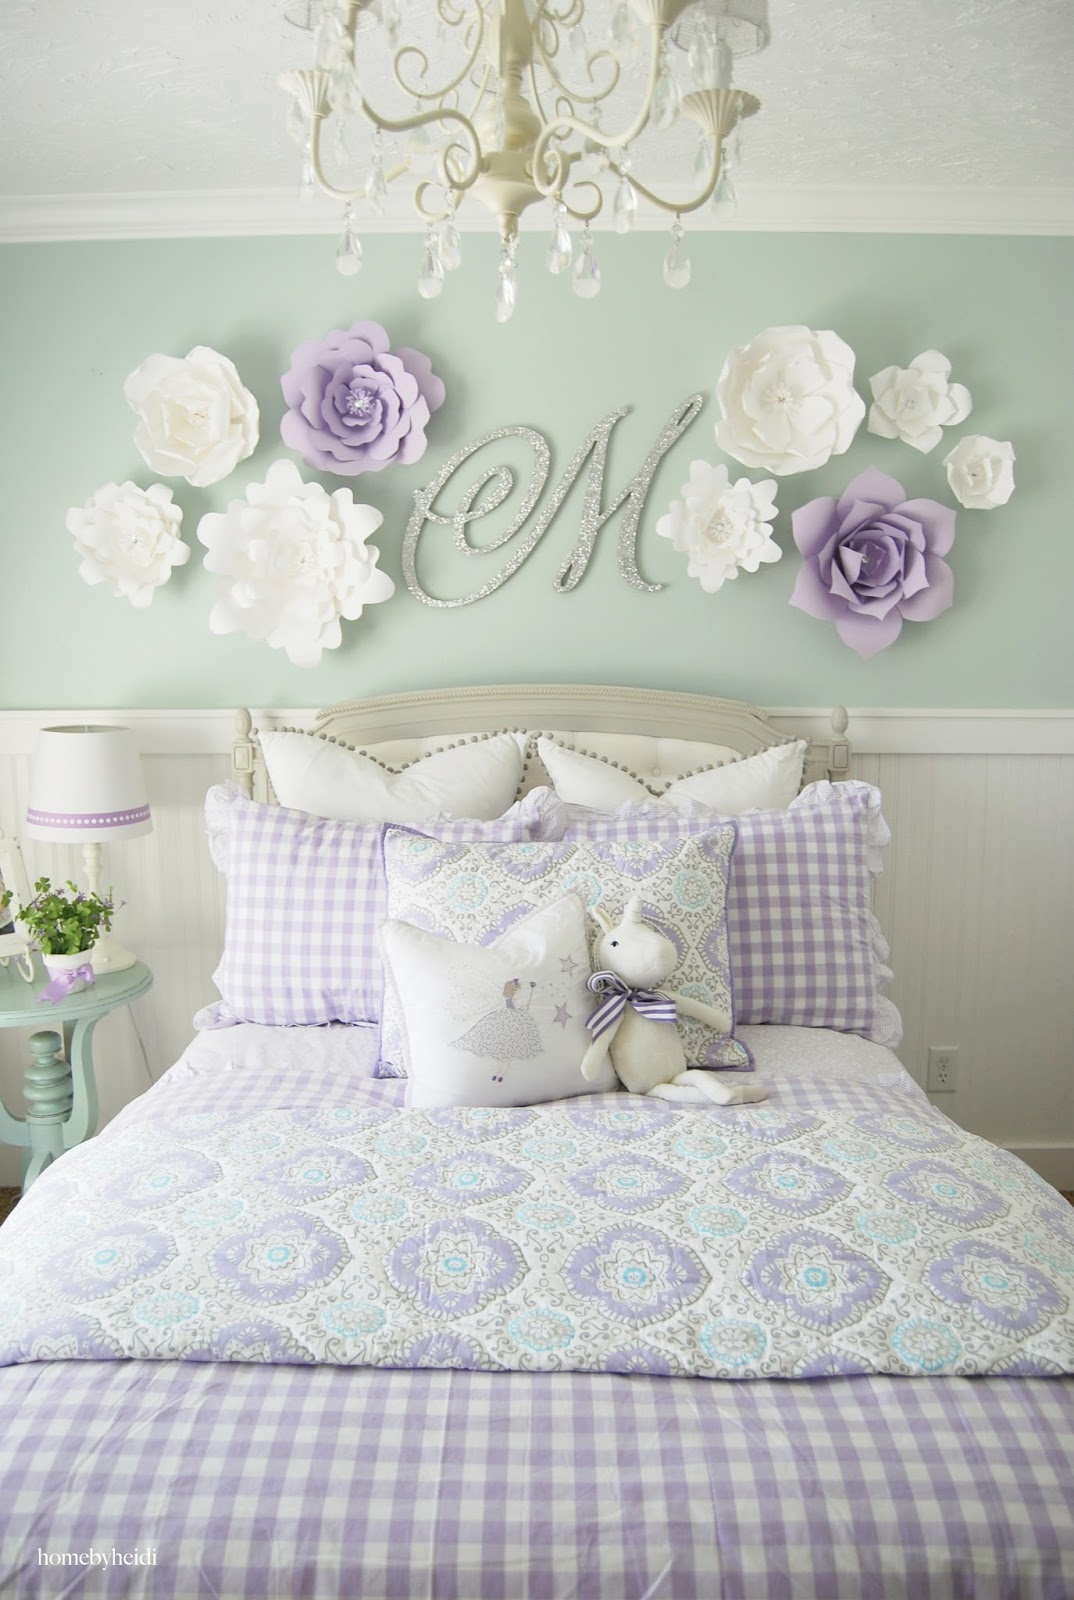 Home by heidi purple turquoise little girls room Girls bedroom ideas pictures